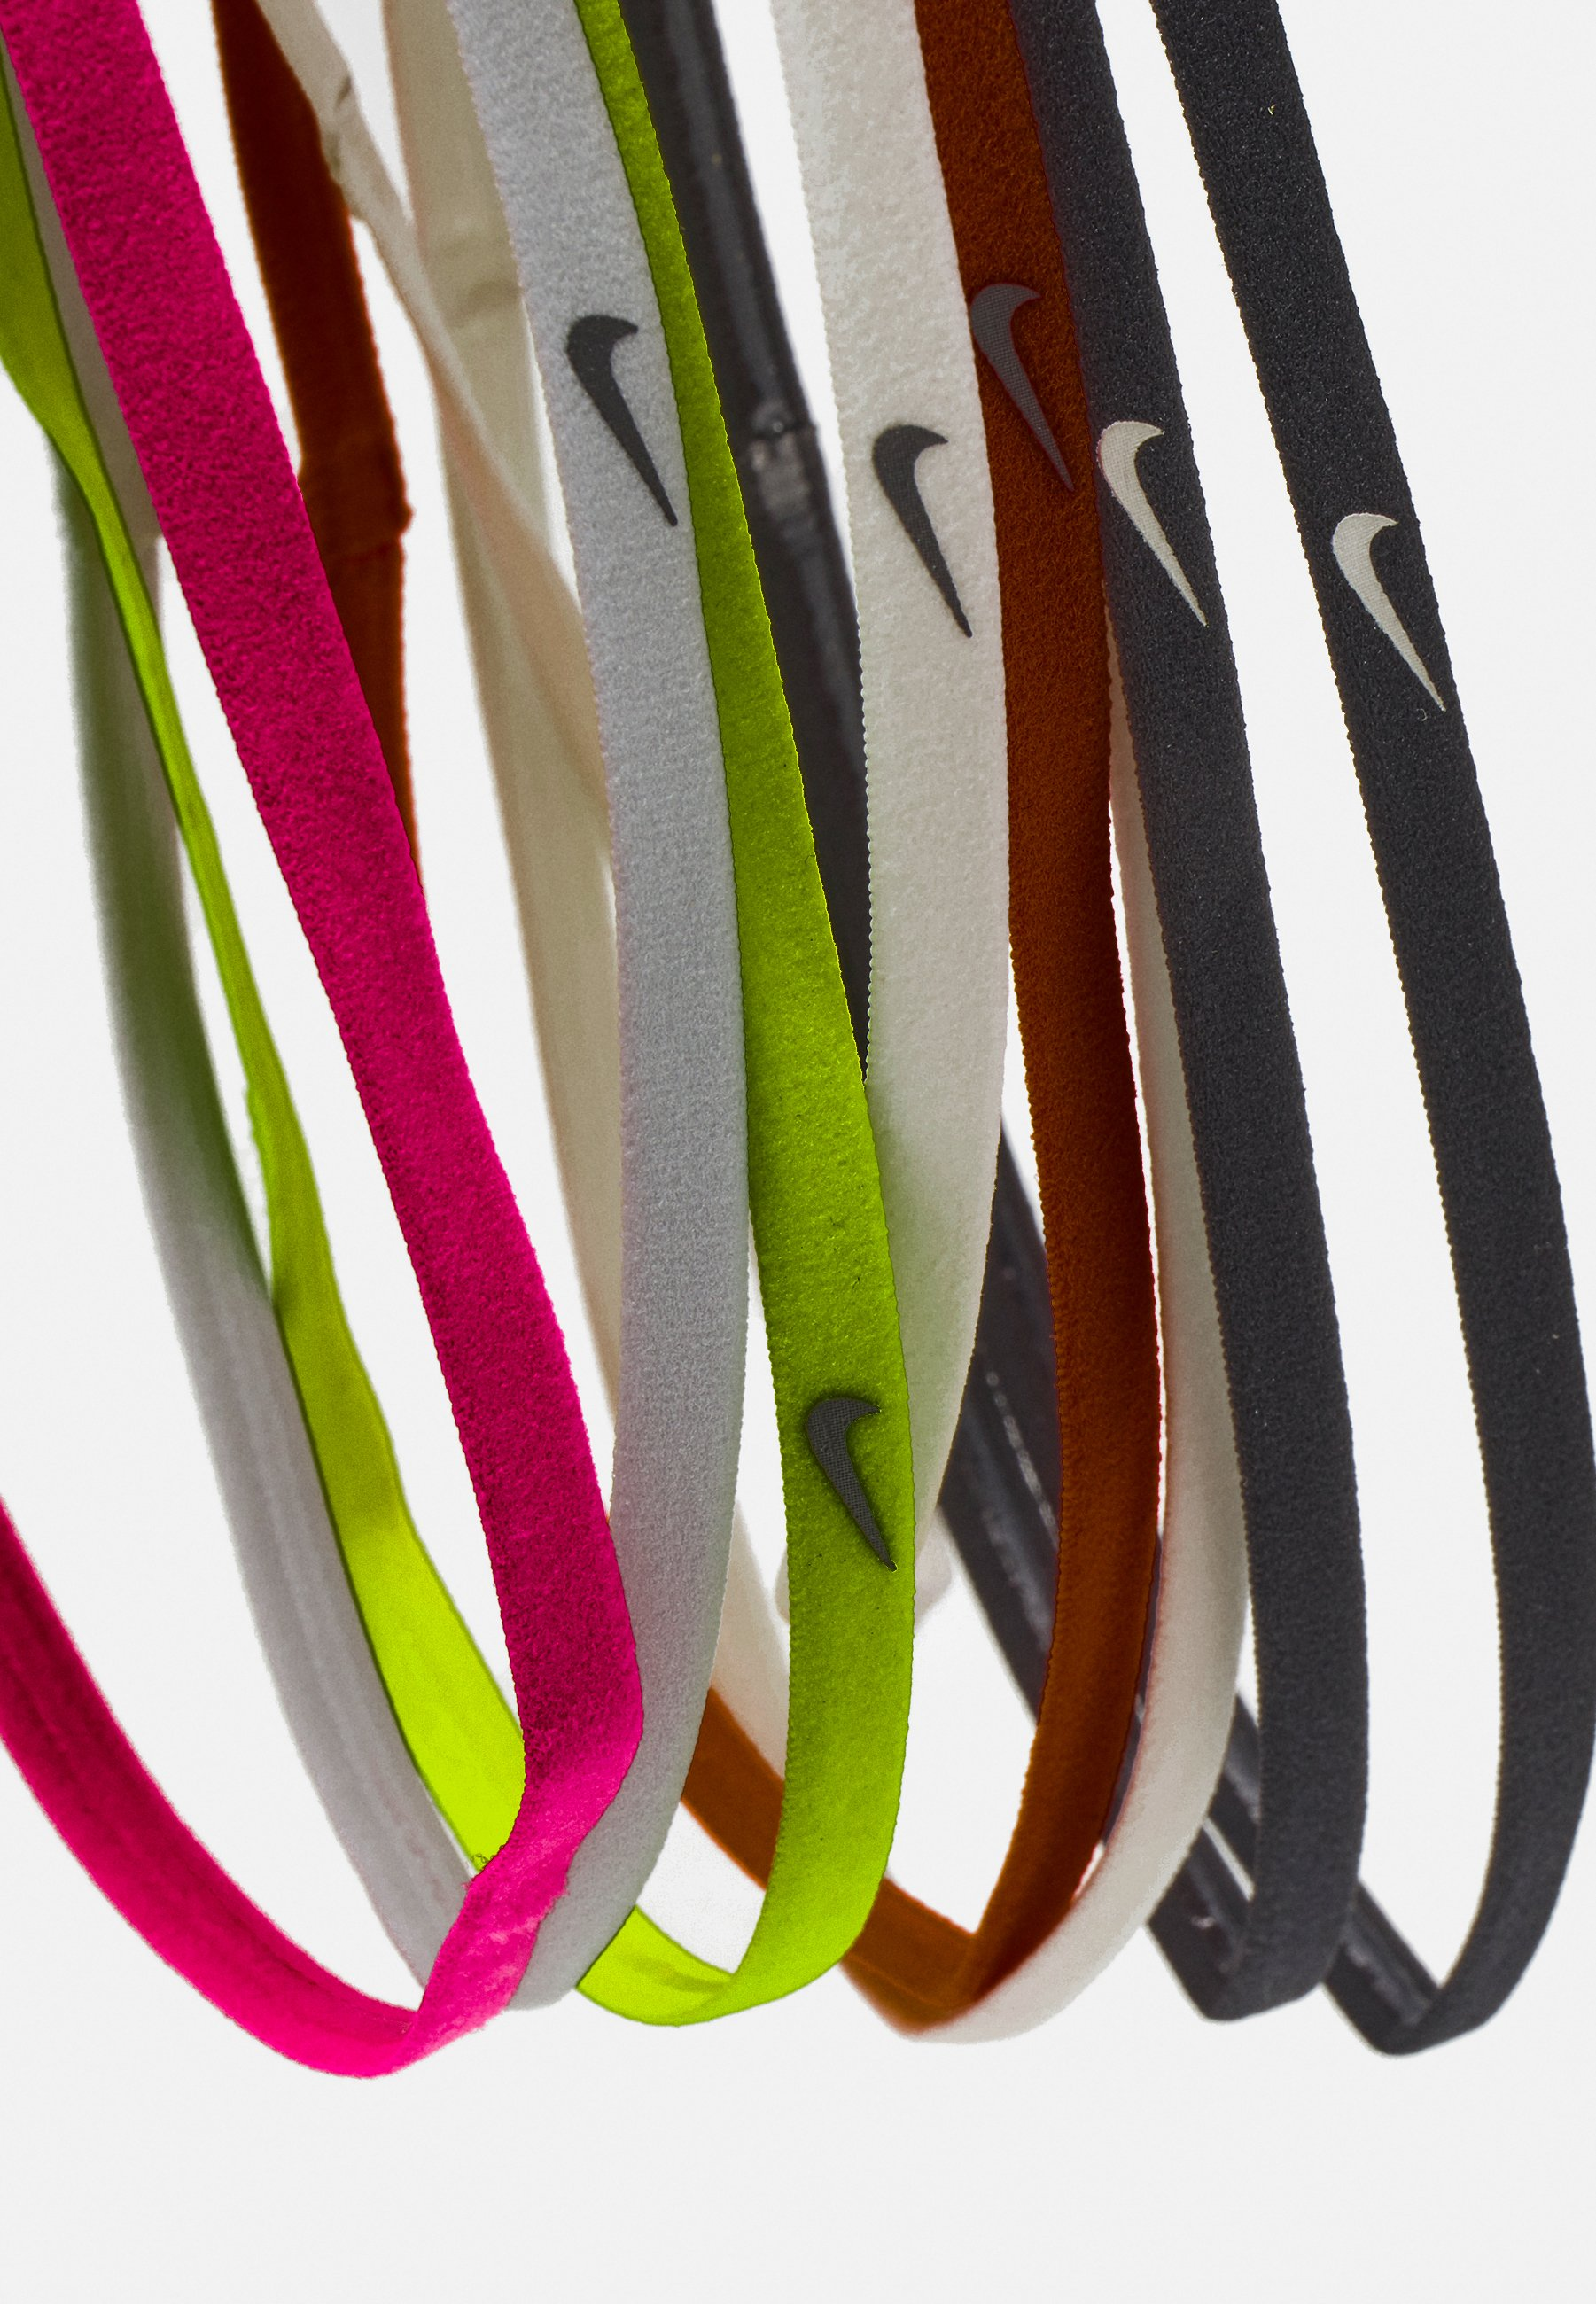 Femme SKINNY HAIRBANDS 8 PACK - Autres accessoires